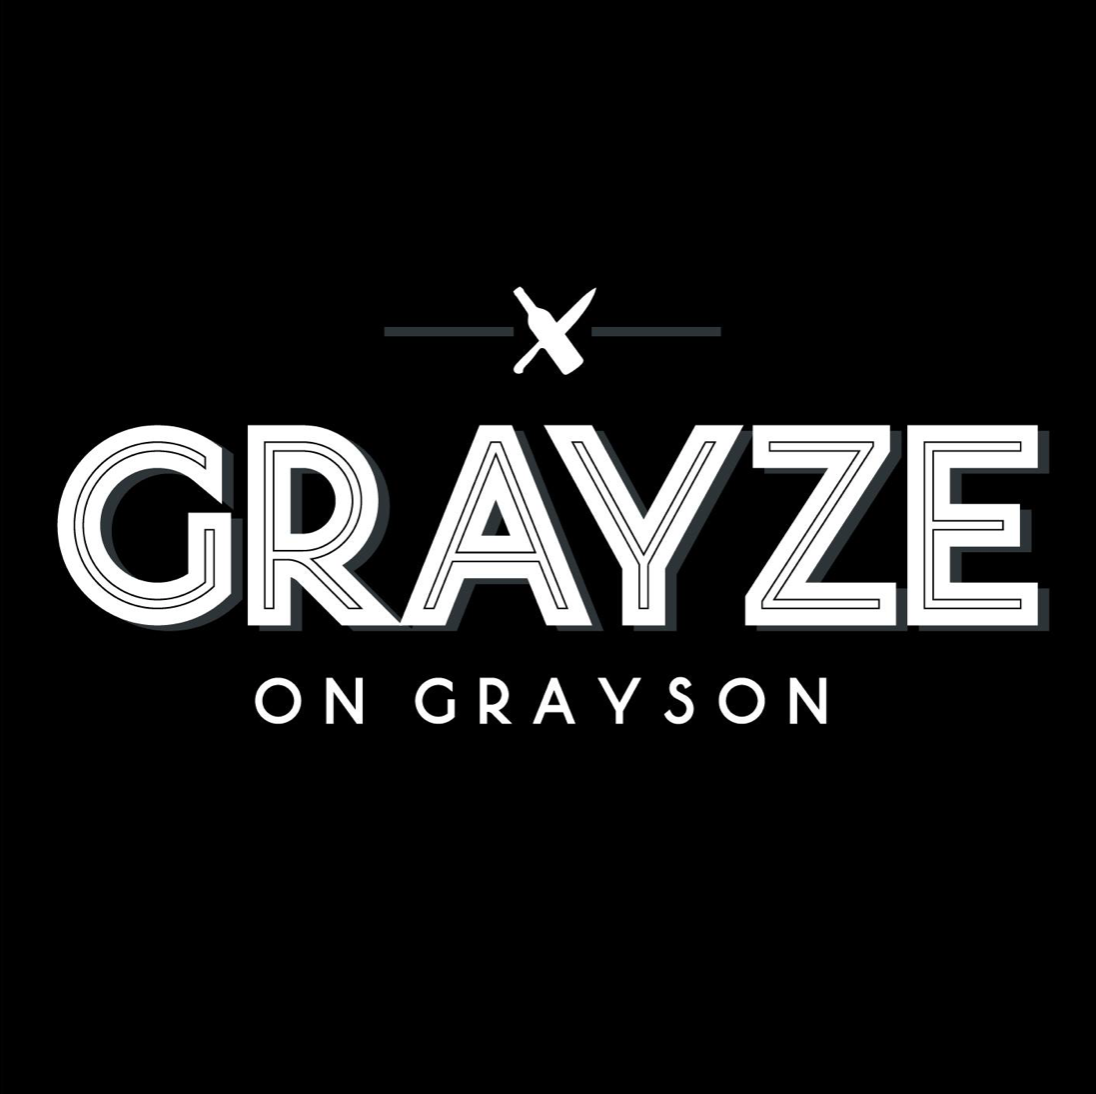 Grayze , Lunch, Brunch, & Dinner  521 East Grayson Street, San Antonio, 78215  P 210-481-8776    Grayze's Dinner Menu      Make a Reservation on OpenTable